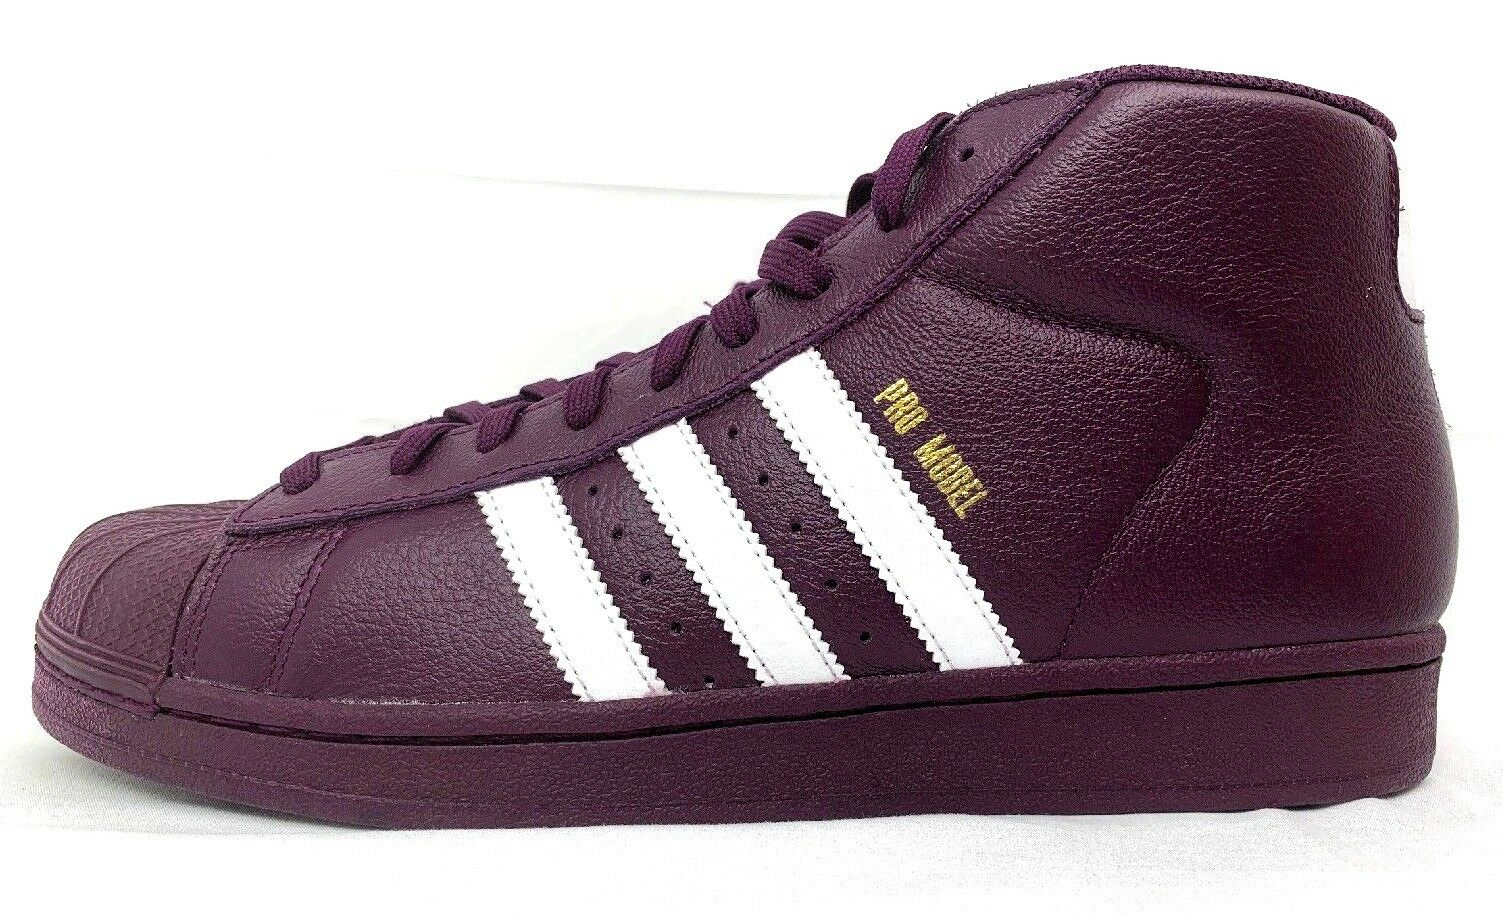 ADIDAS Pro Model Mens Mid Top Sneaker AC7646 US SIZE 8.5 Burgundy color 3 stripe